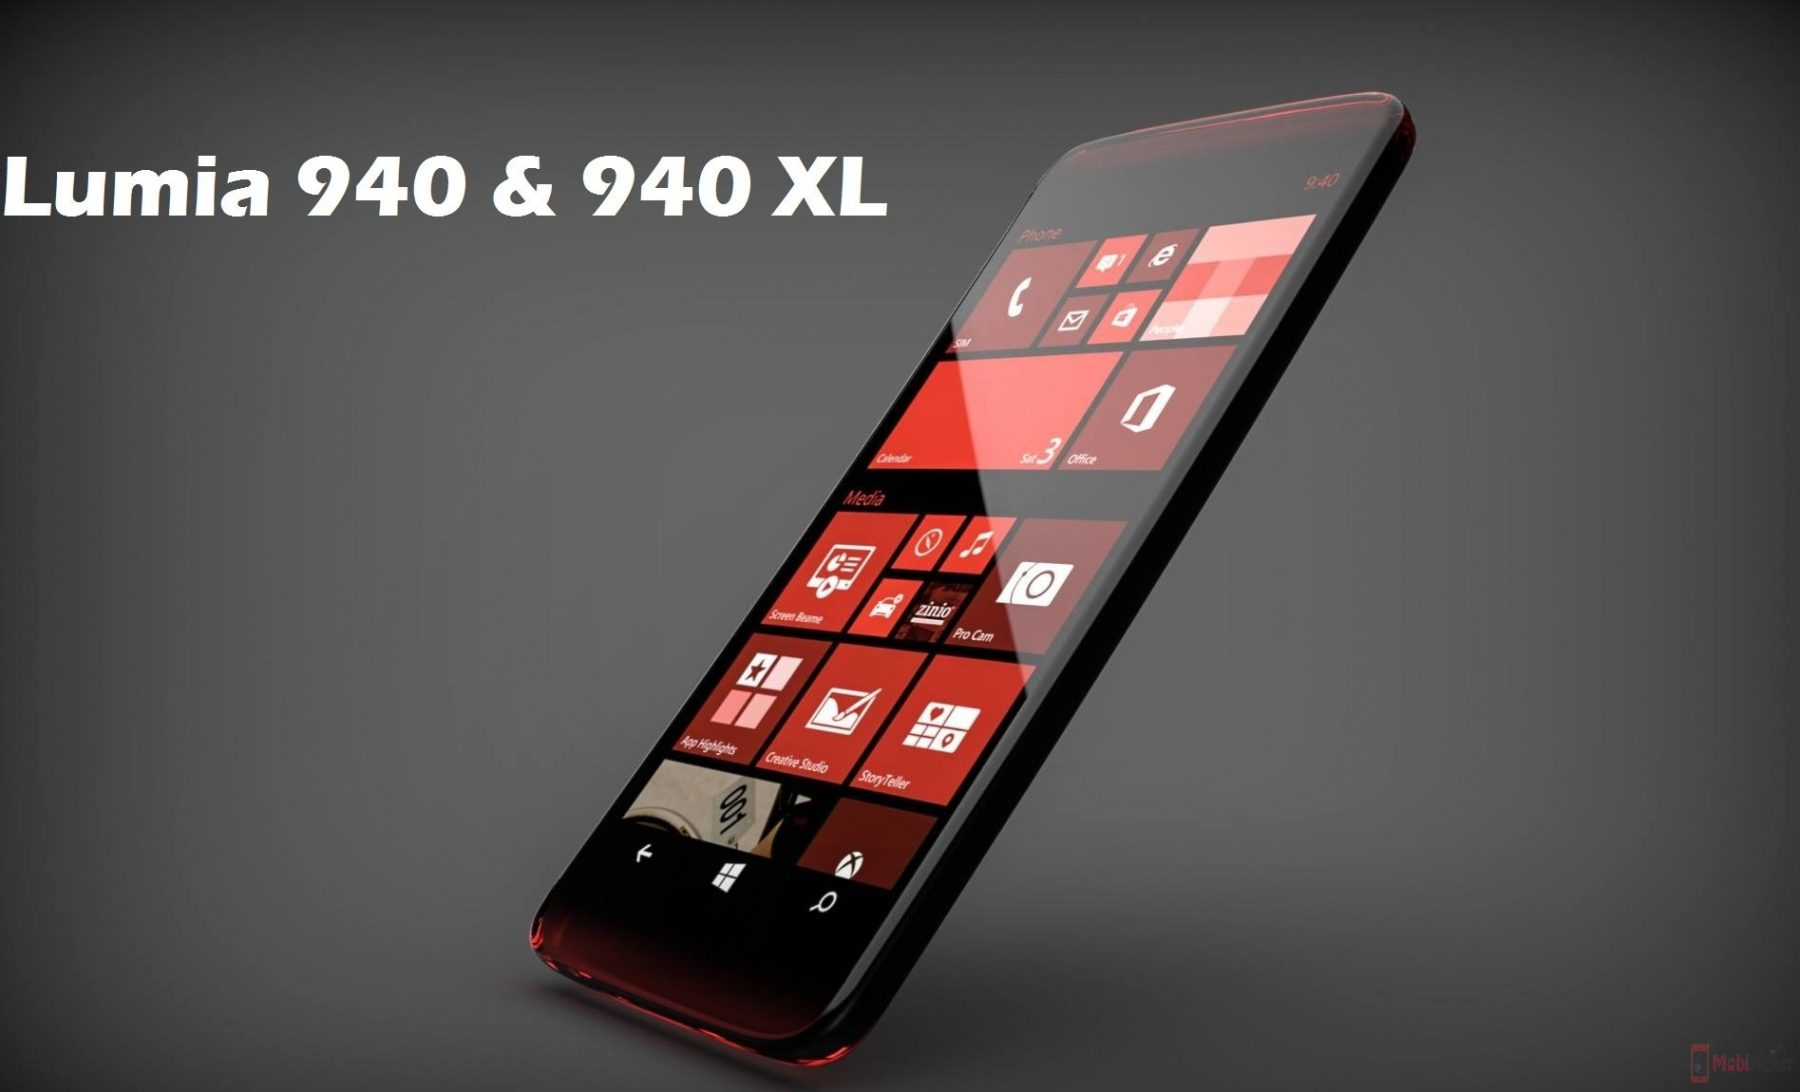 Premium Lumia phones with Microsoft Windows 10 coming soon